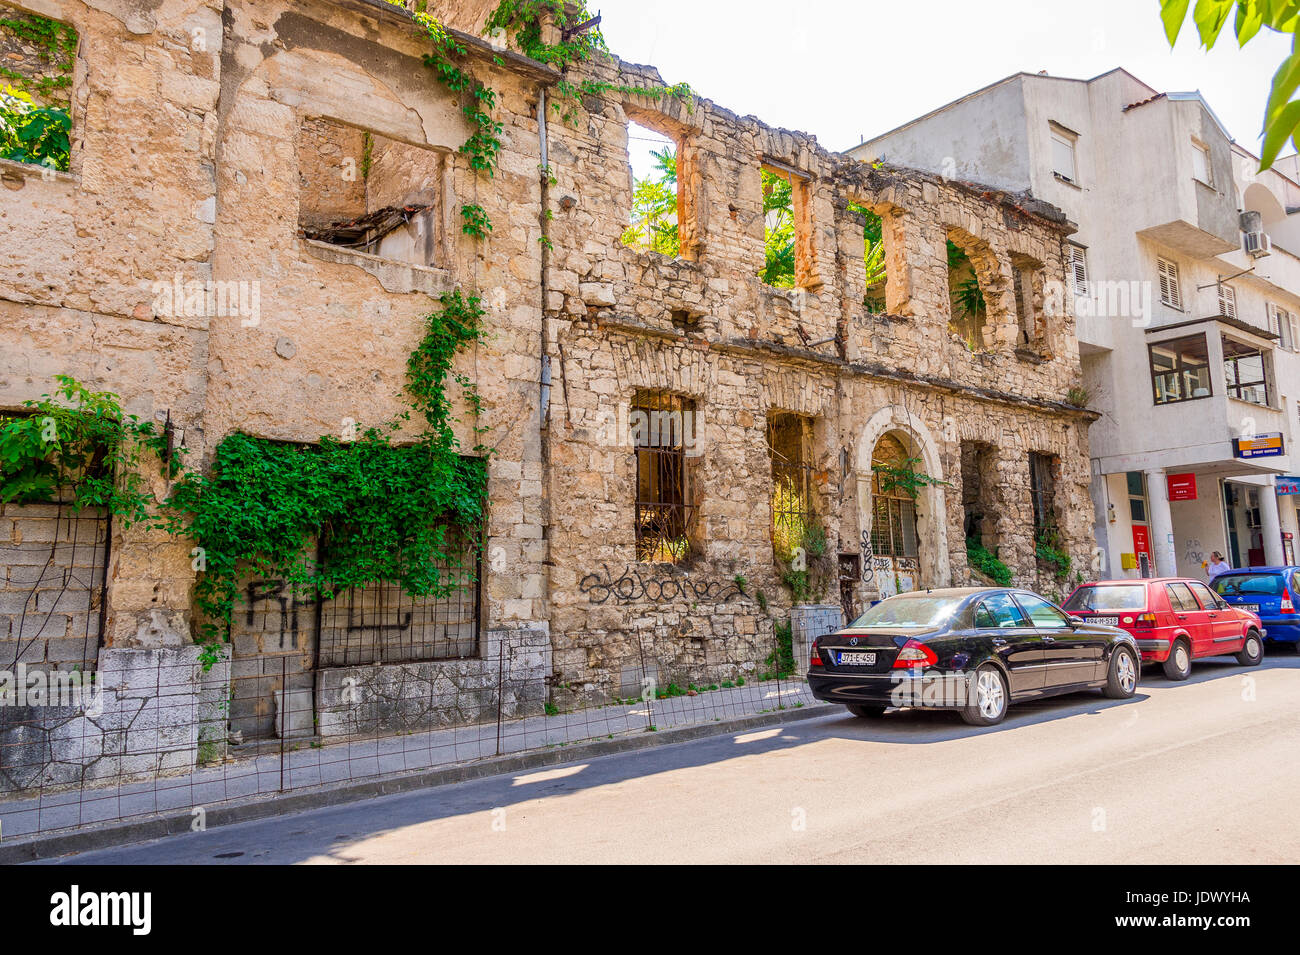 Mostar still shows evidence of the Homeland war with many buildings destroyed - Stock Image